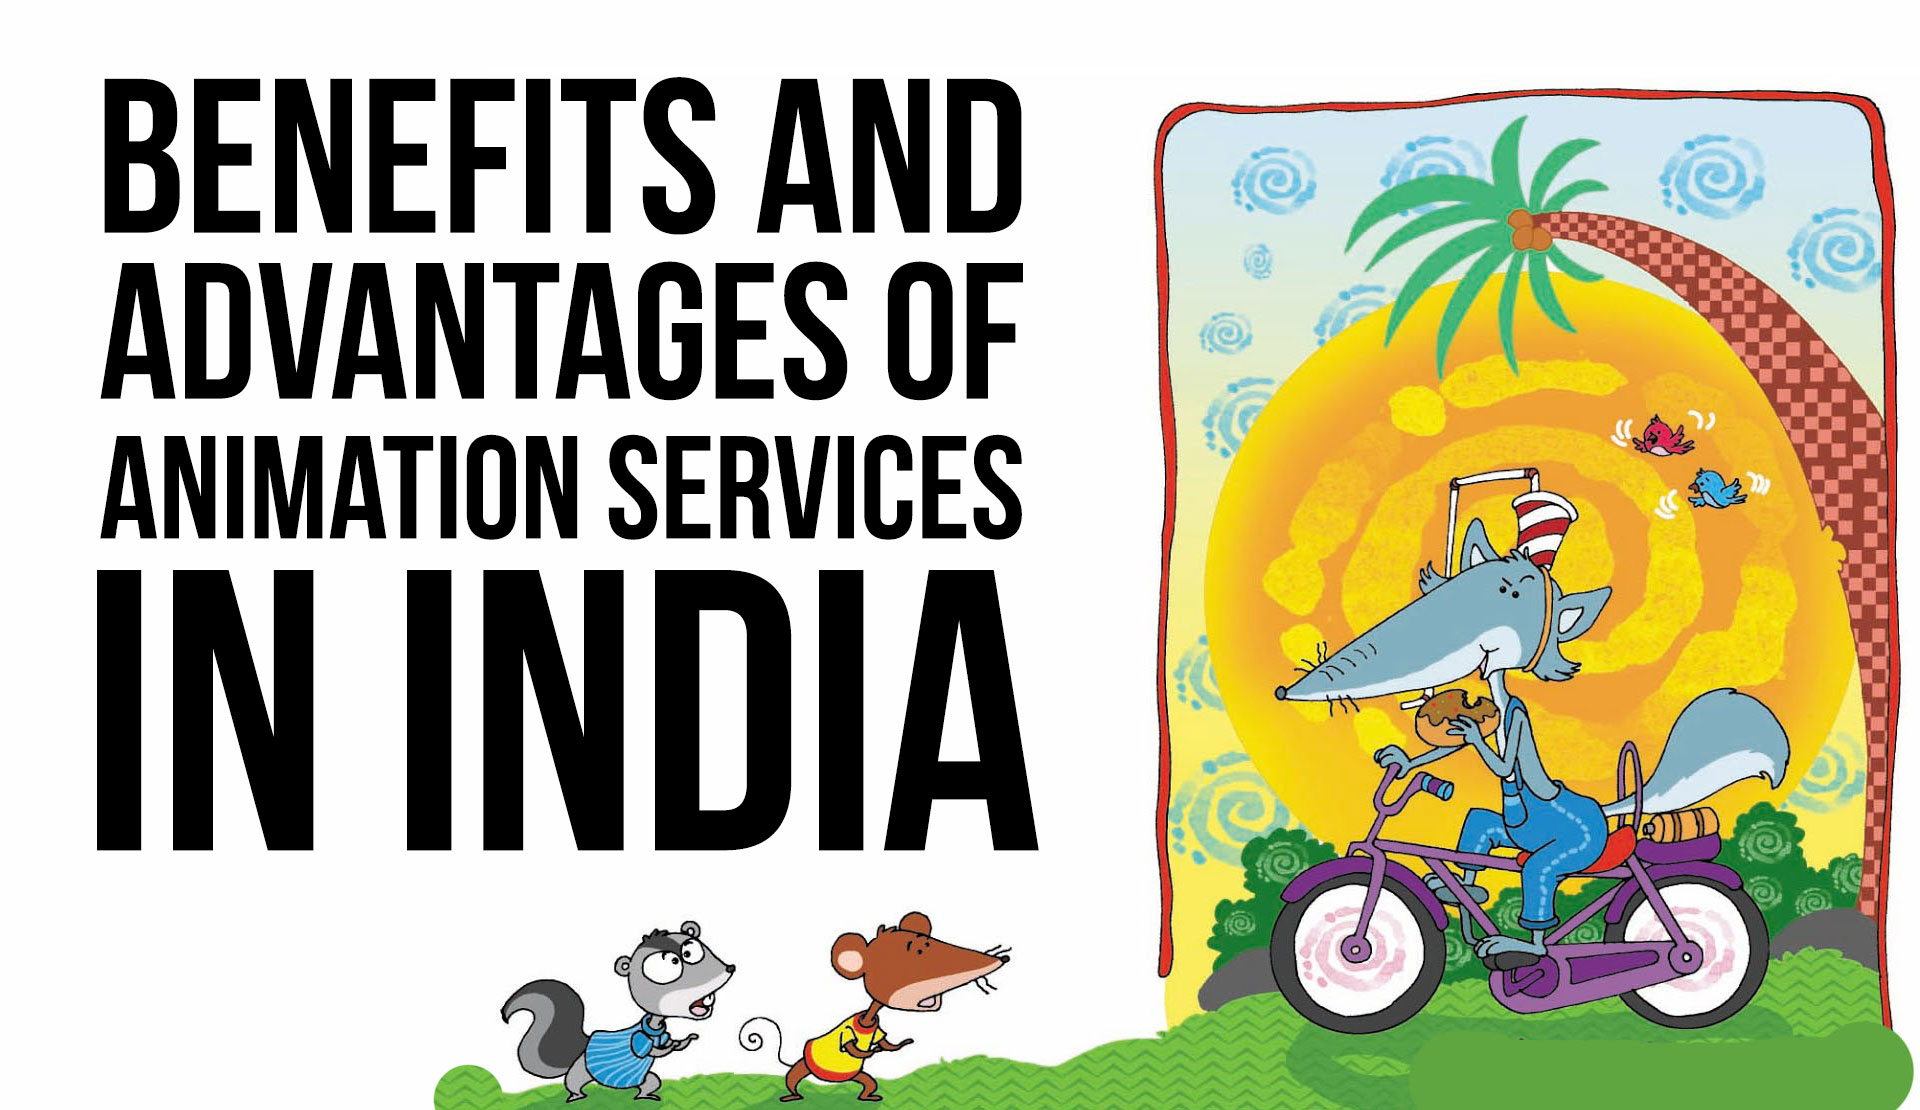 Advantages of Animation Services in India